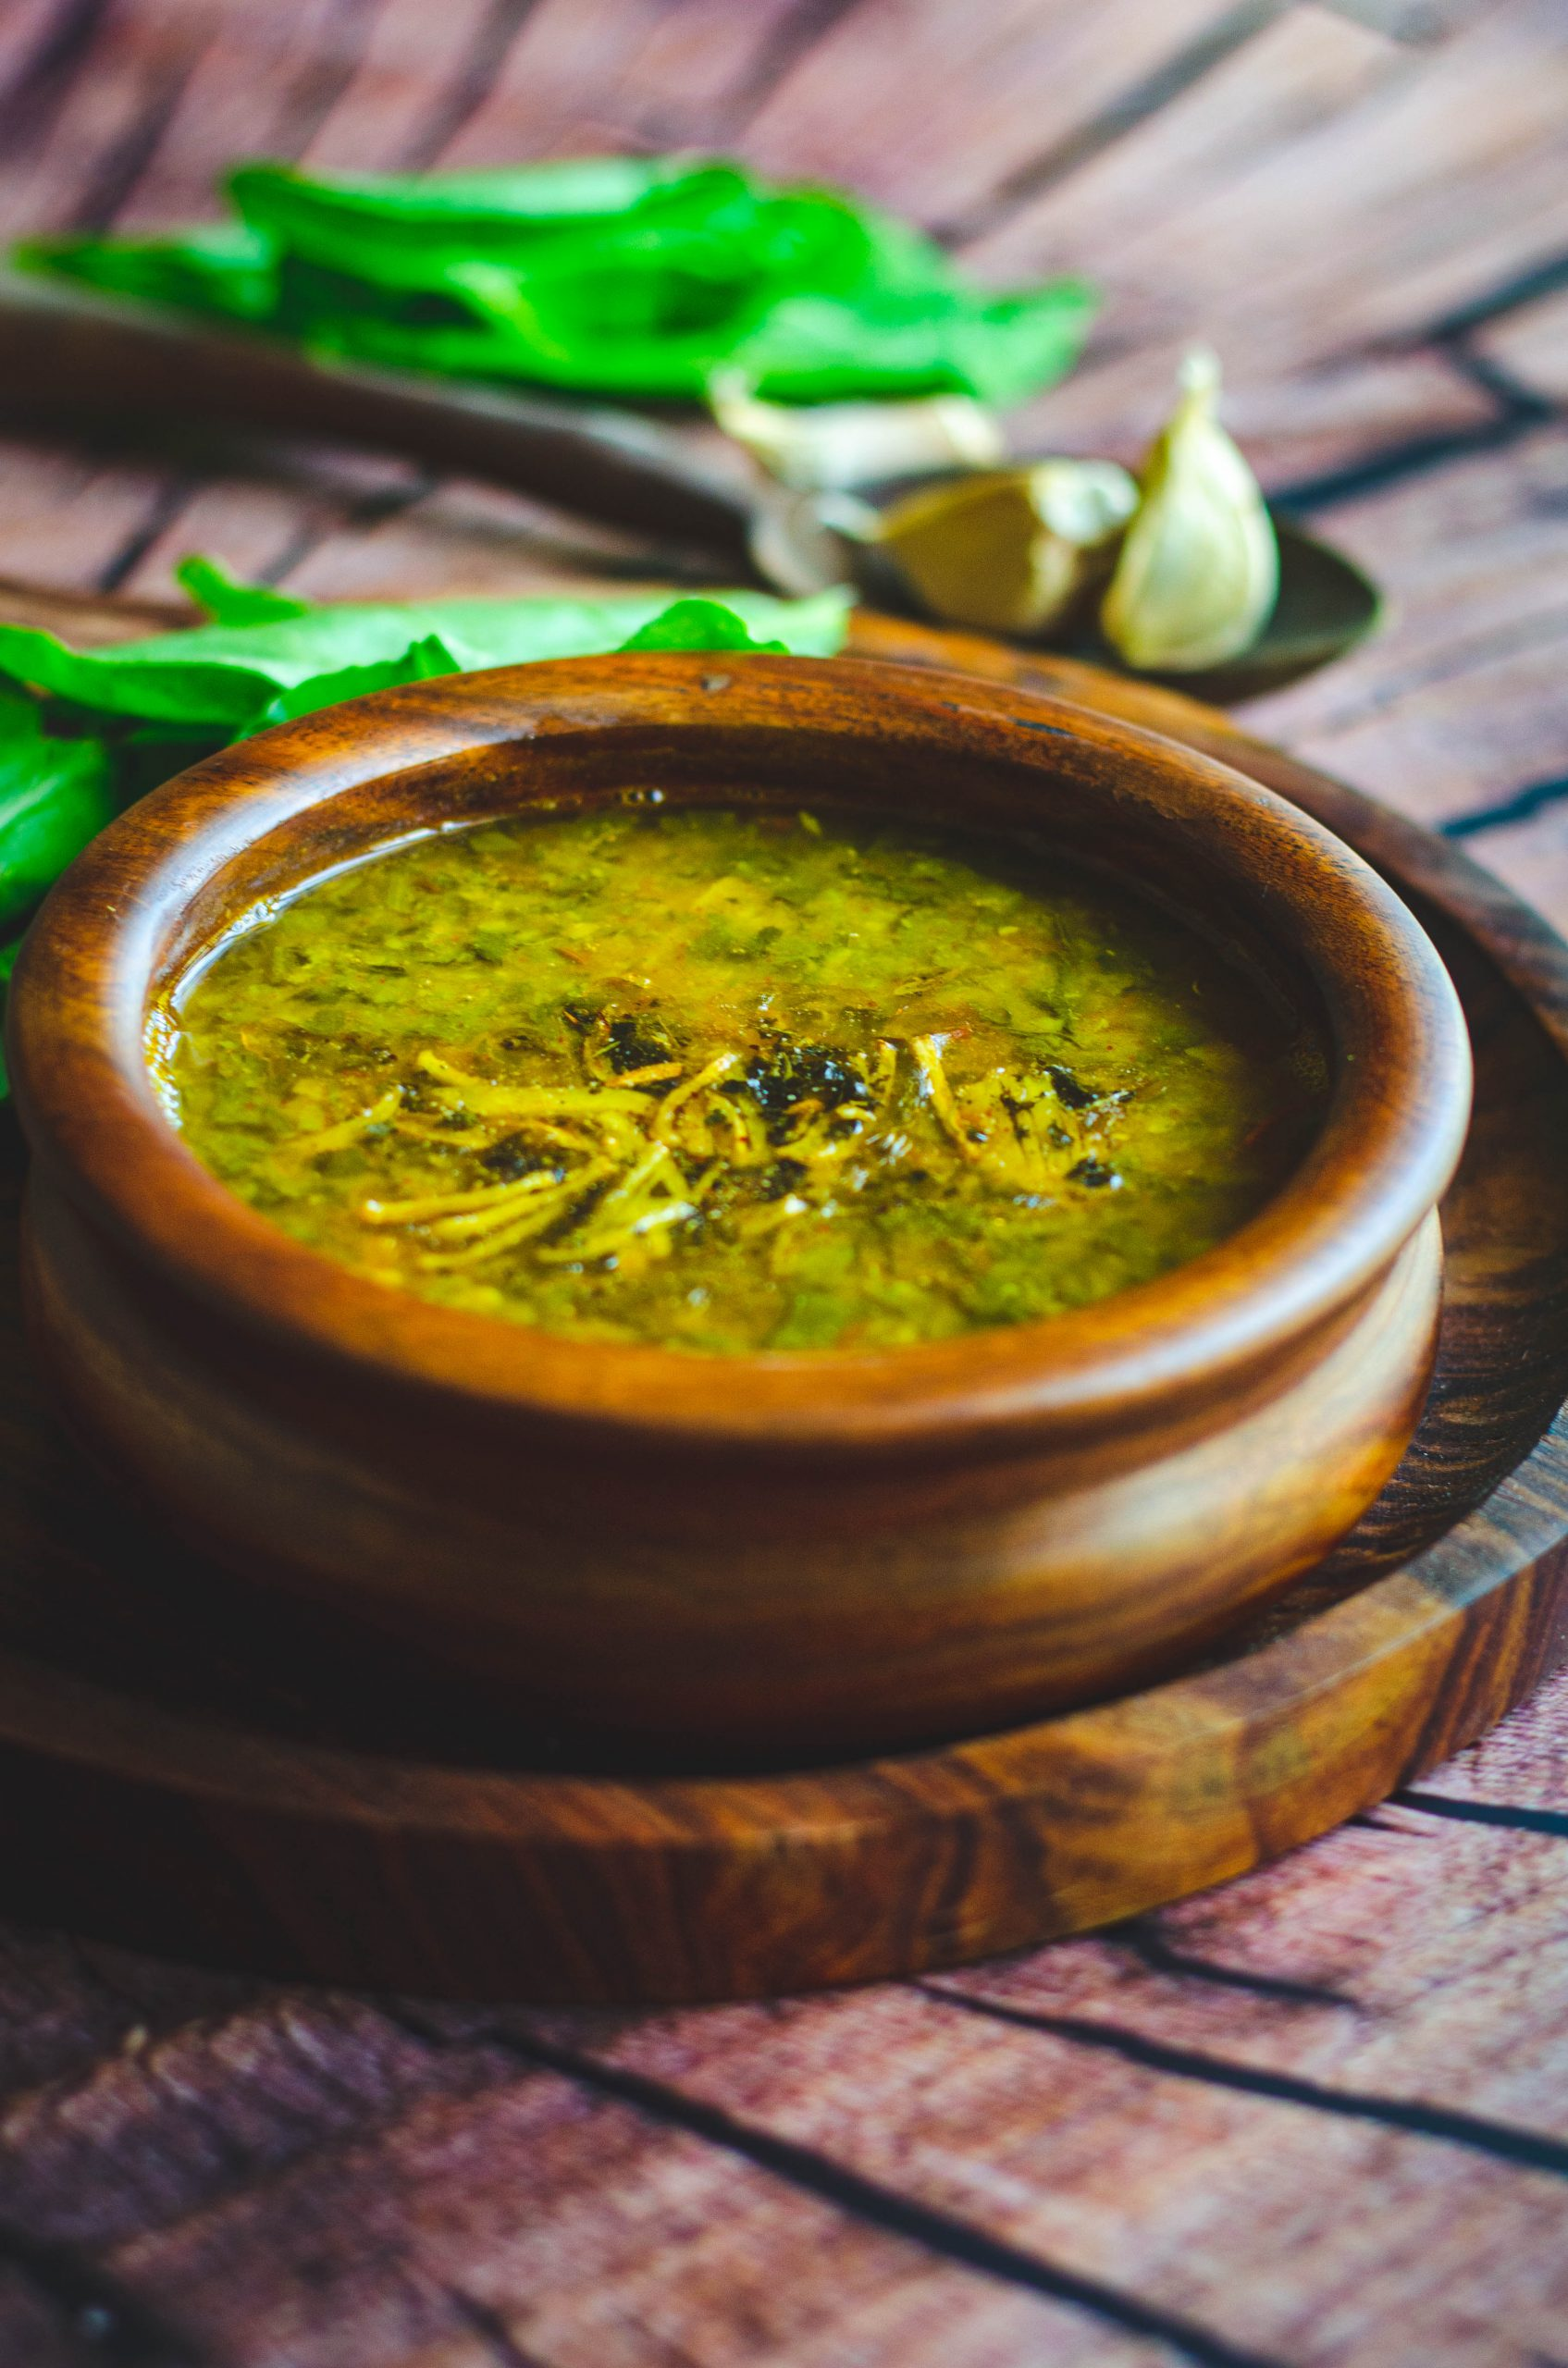 Spinach garlic dal served in a wooden bowl placed on a wooden plate